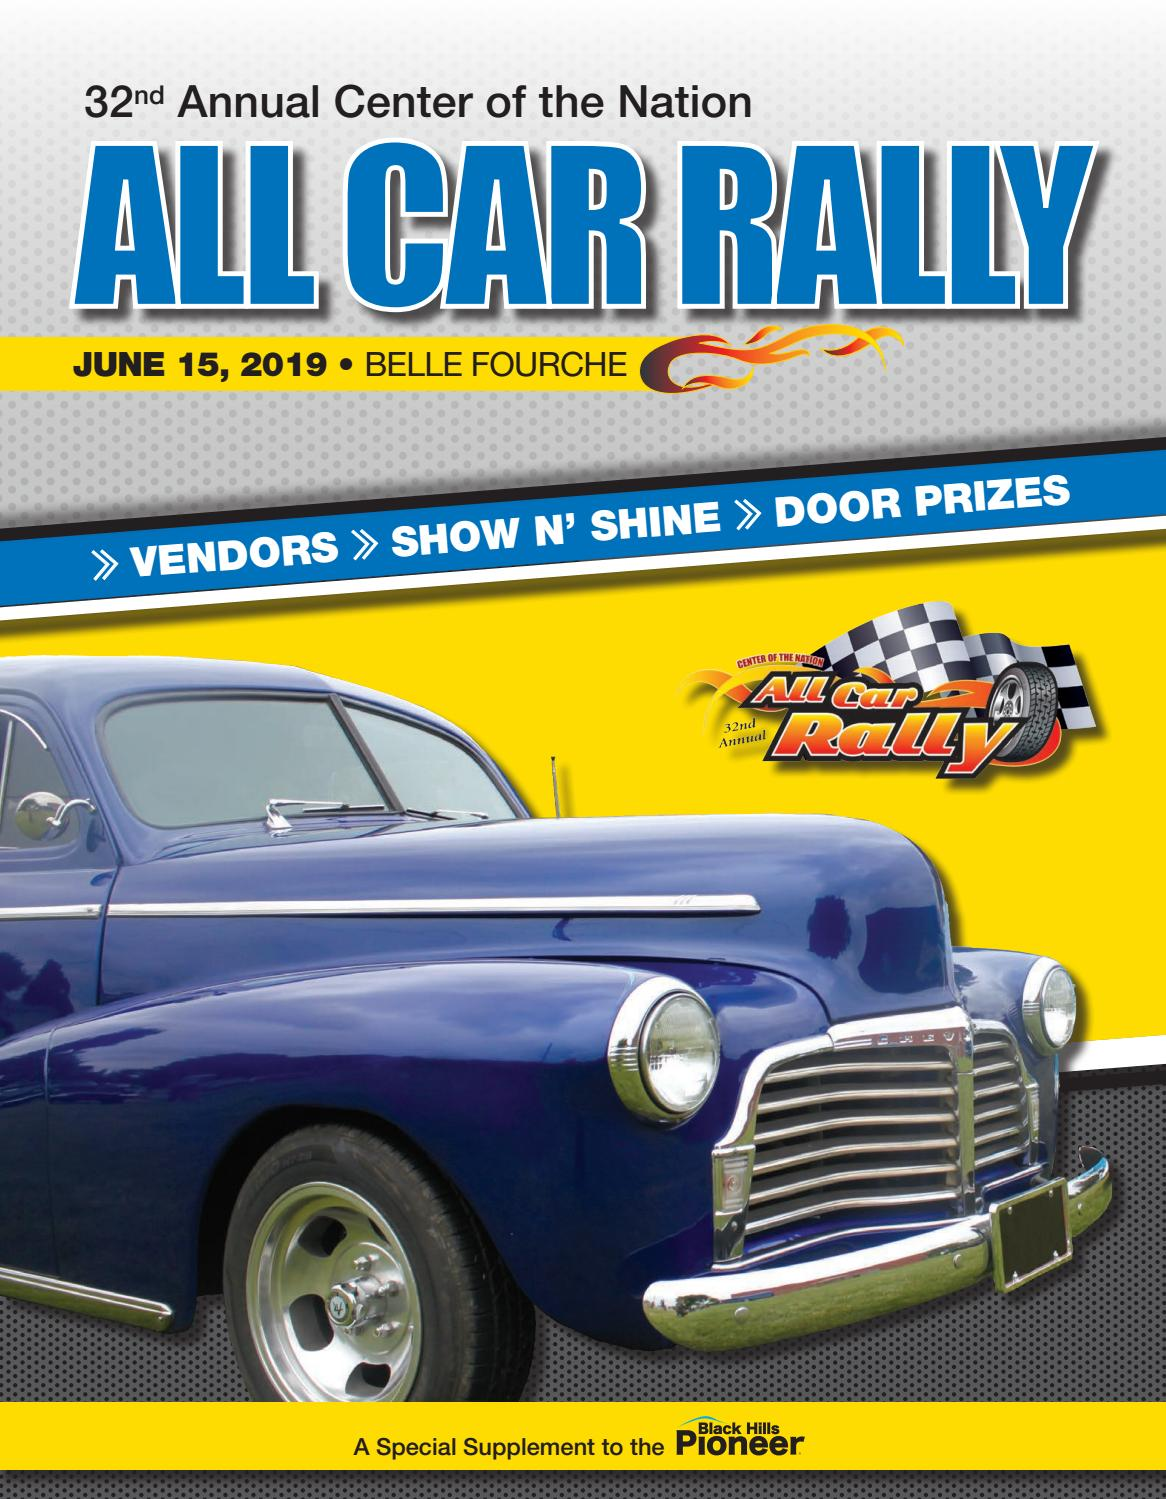 All Car Rally 2019 by Black Hills Pioneer - issuu